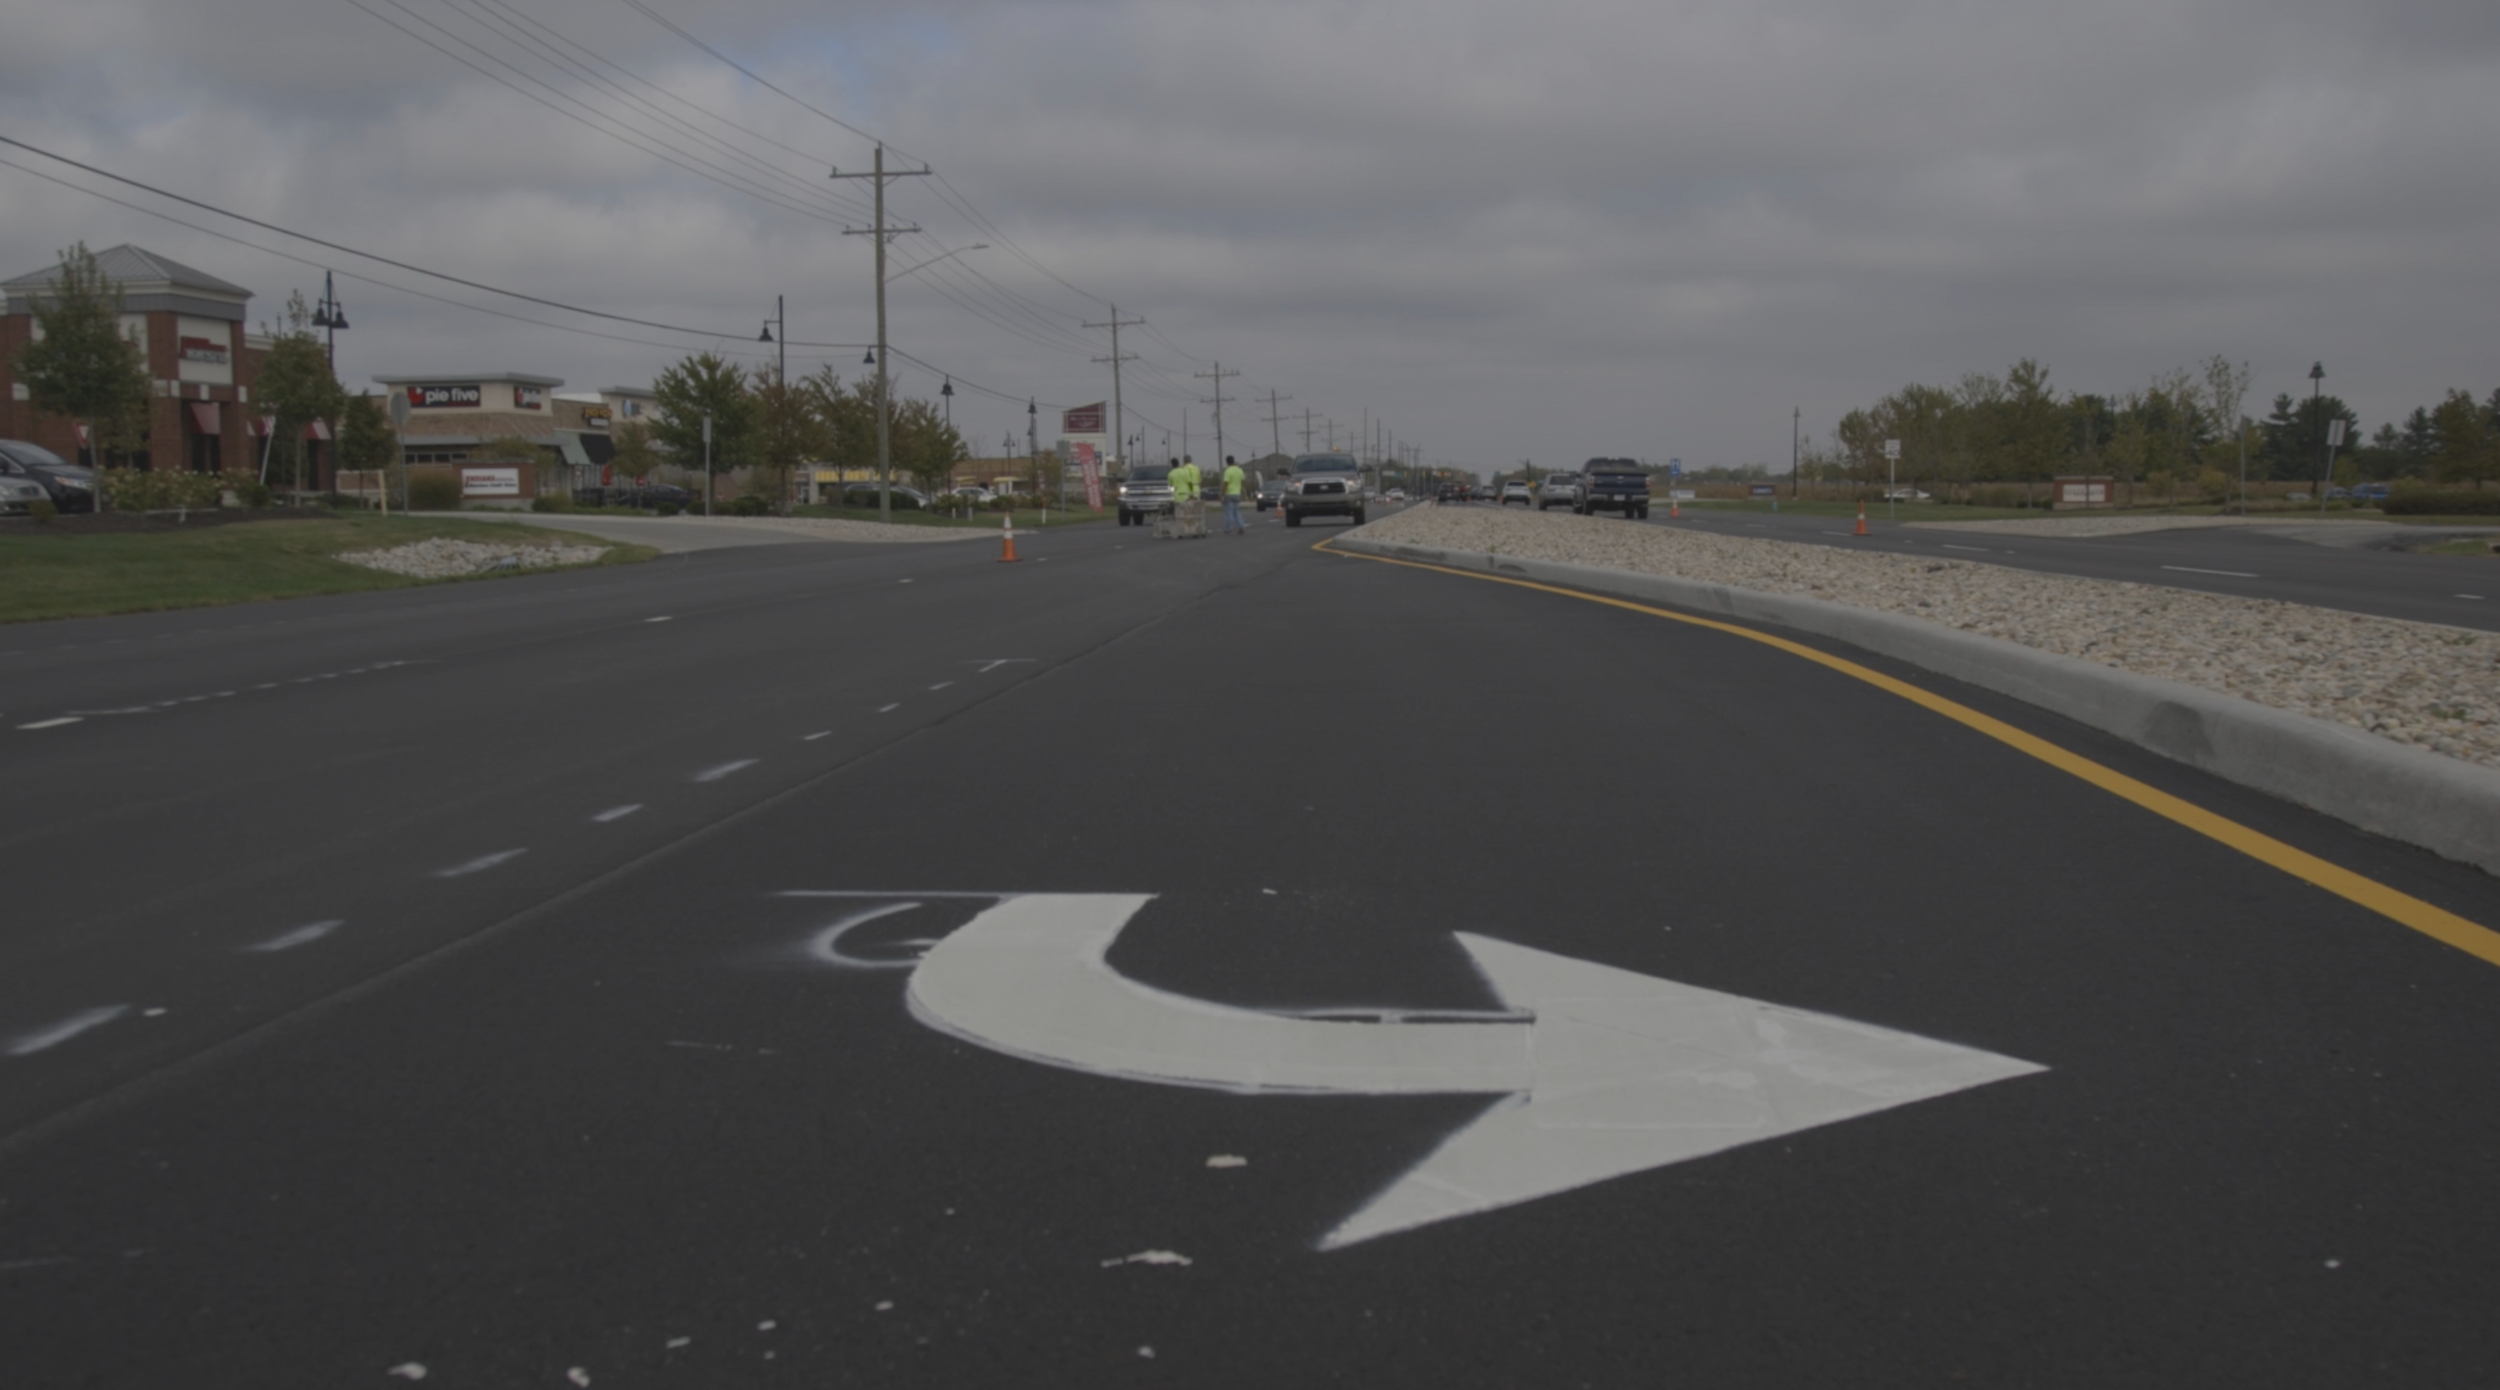 Whitestown parkway thermoplastic markings